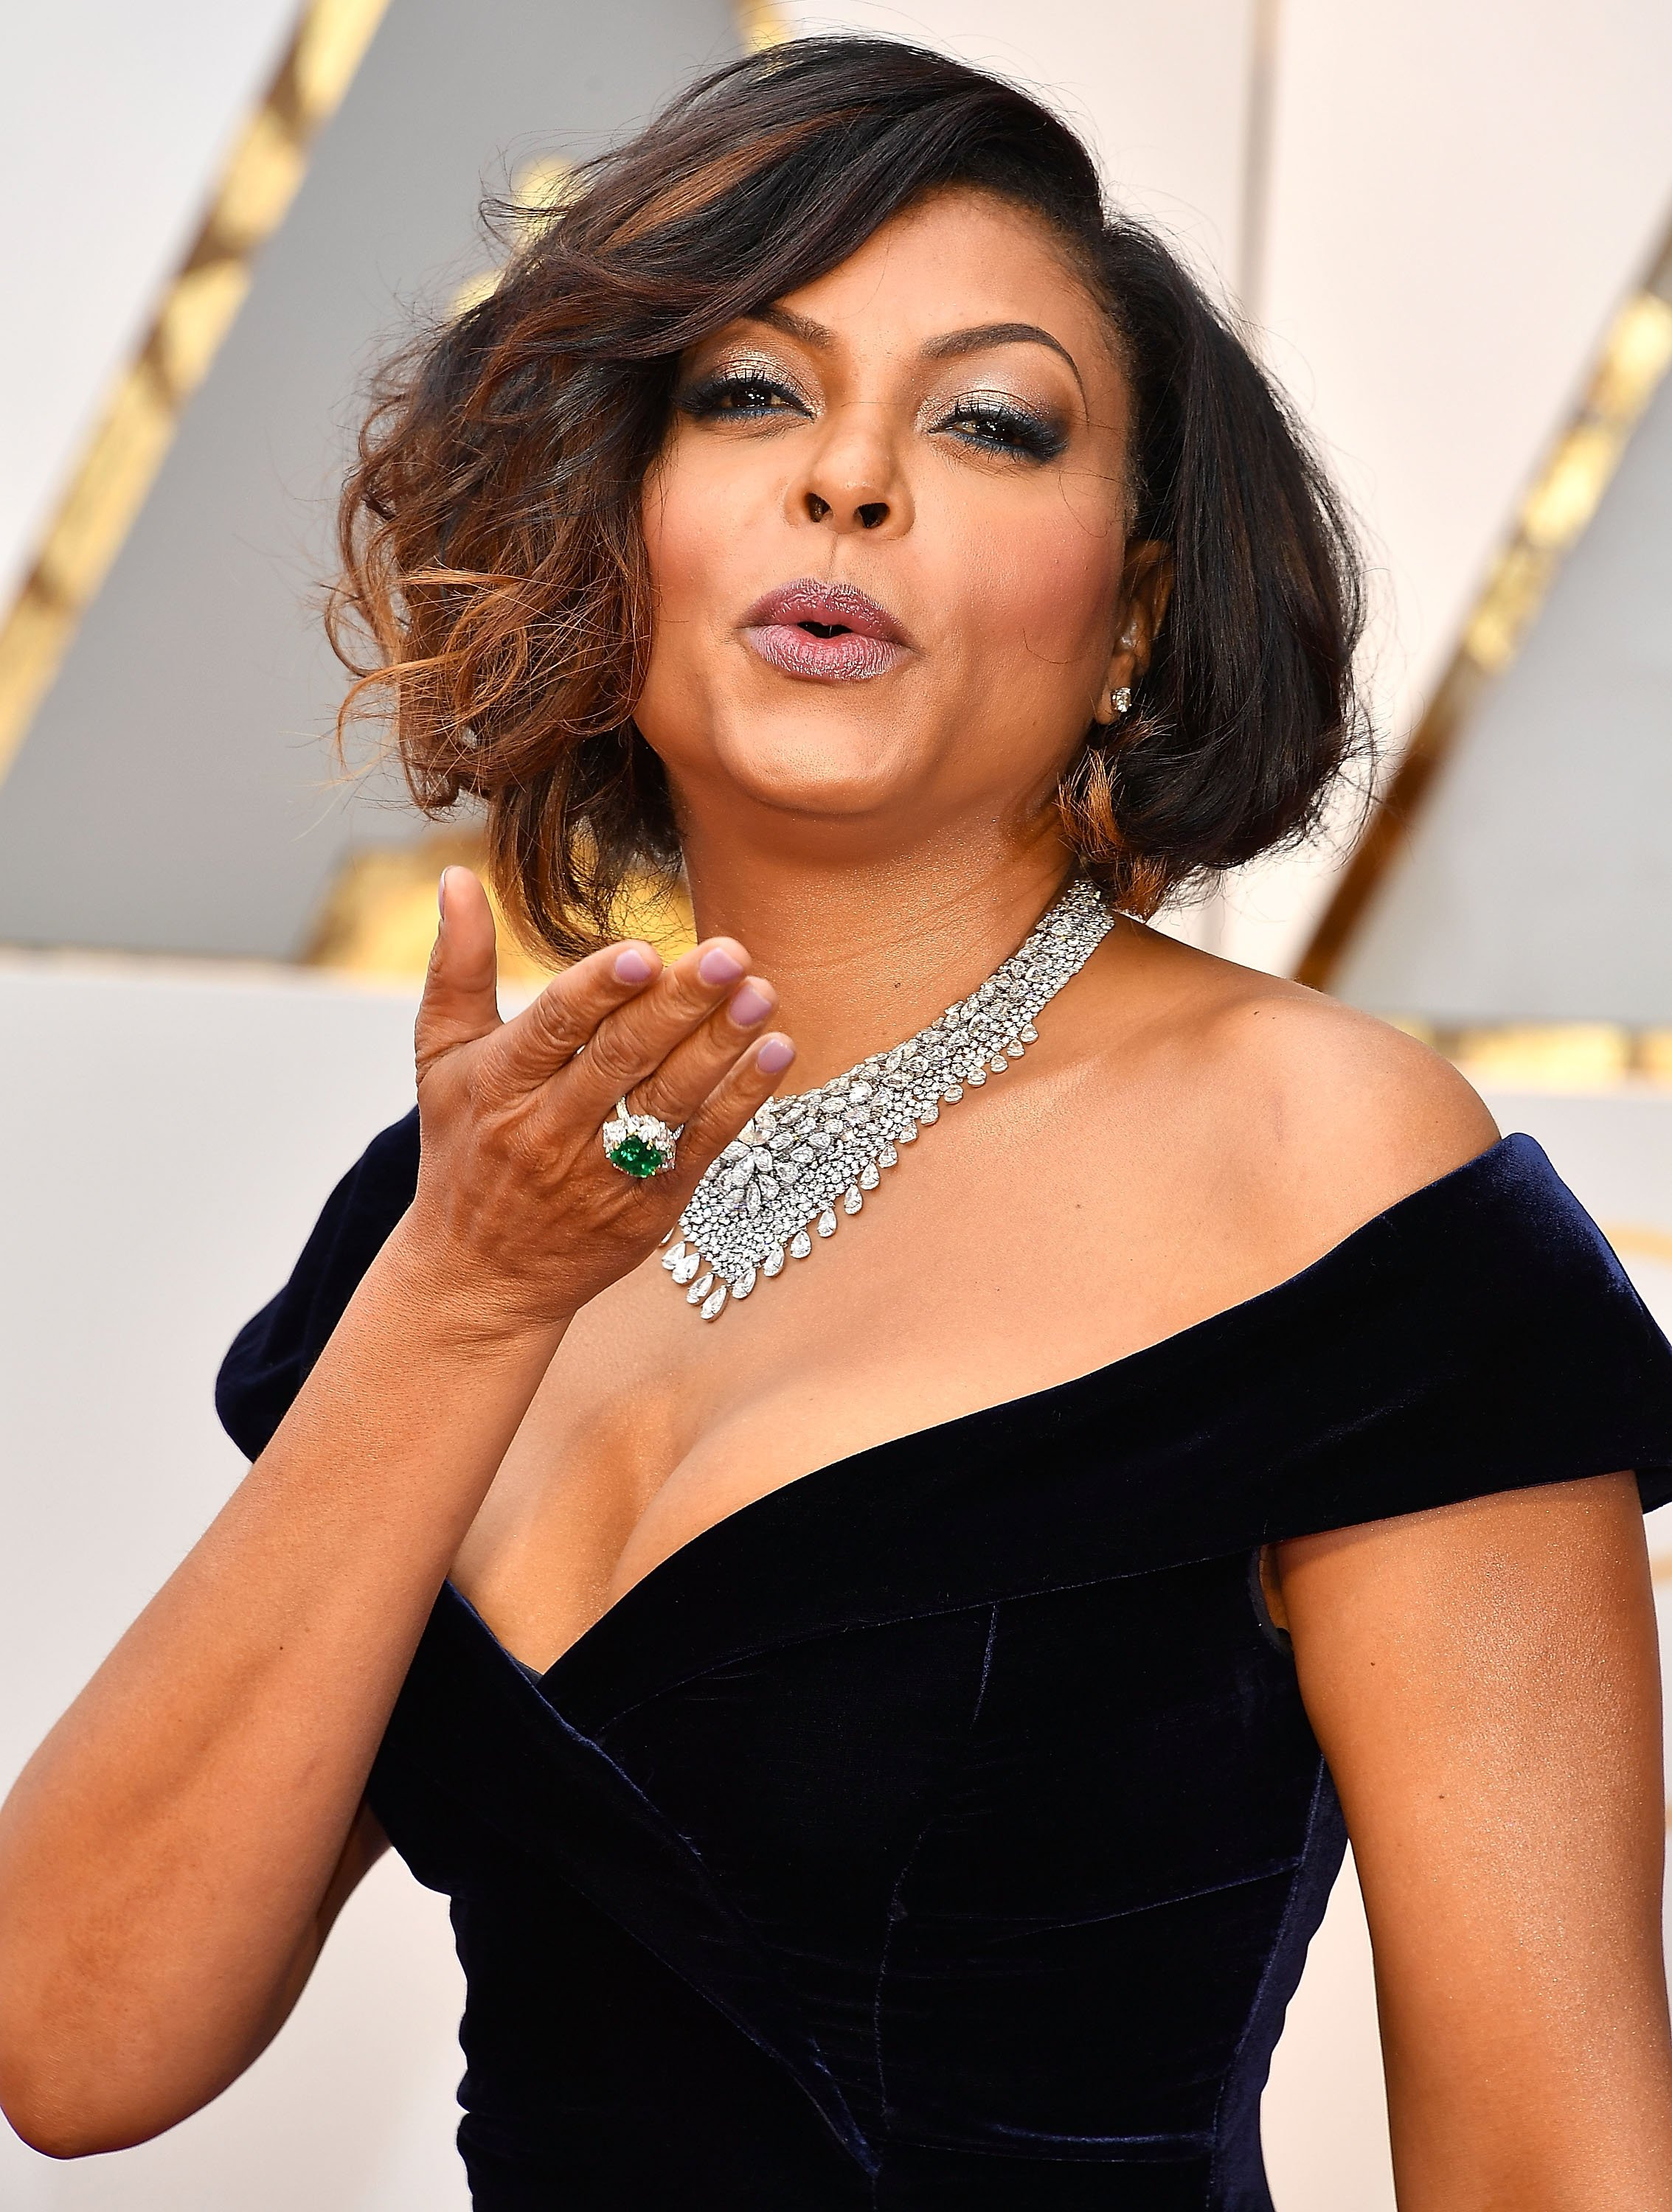 Taraji P. Henson at the 89th Annual Academy Awards at Hollywood & Highland Center on February 26, 2017, in Hollywood, California.| Source: Getty Images